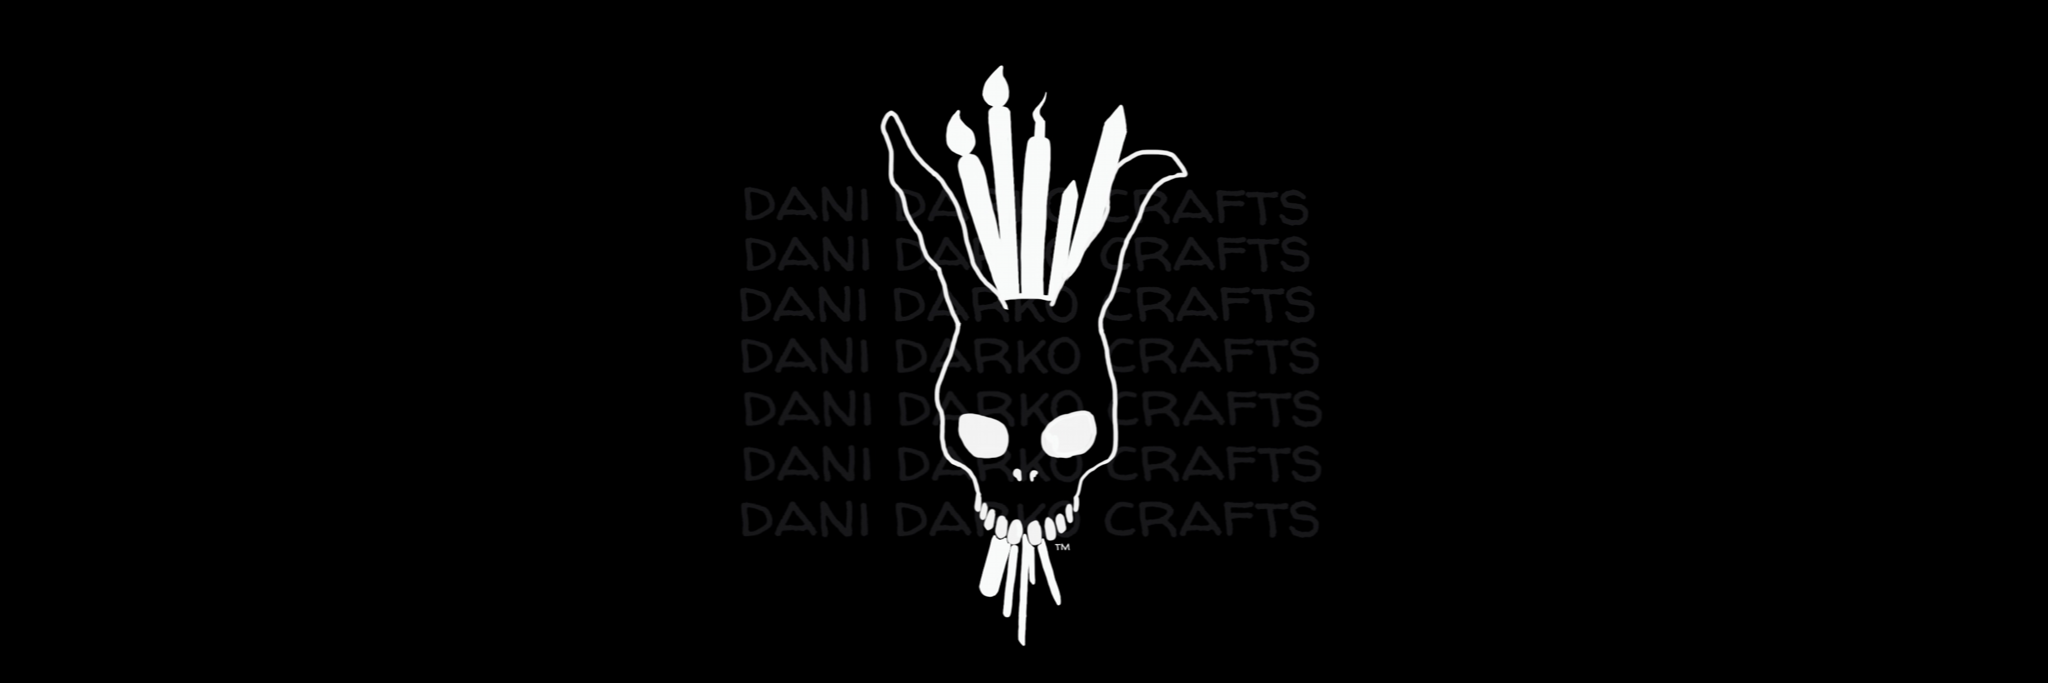 Dani Darko Crafts